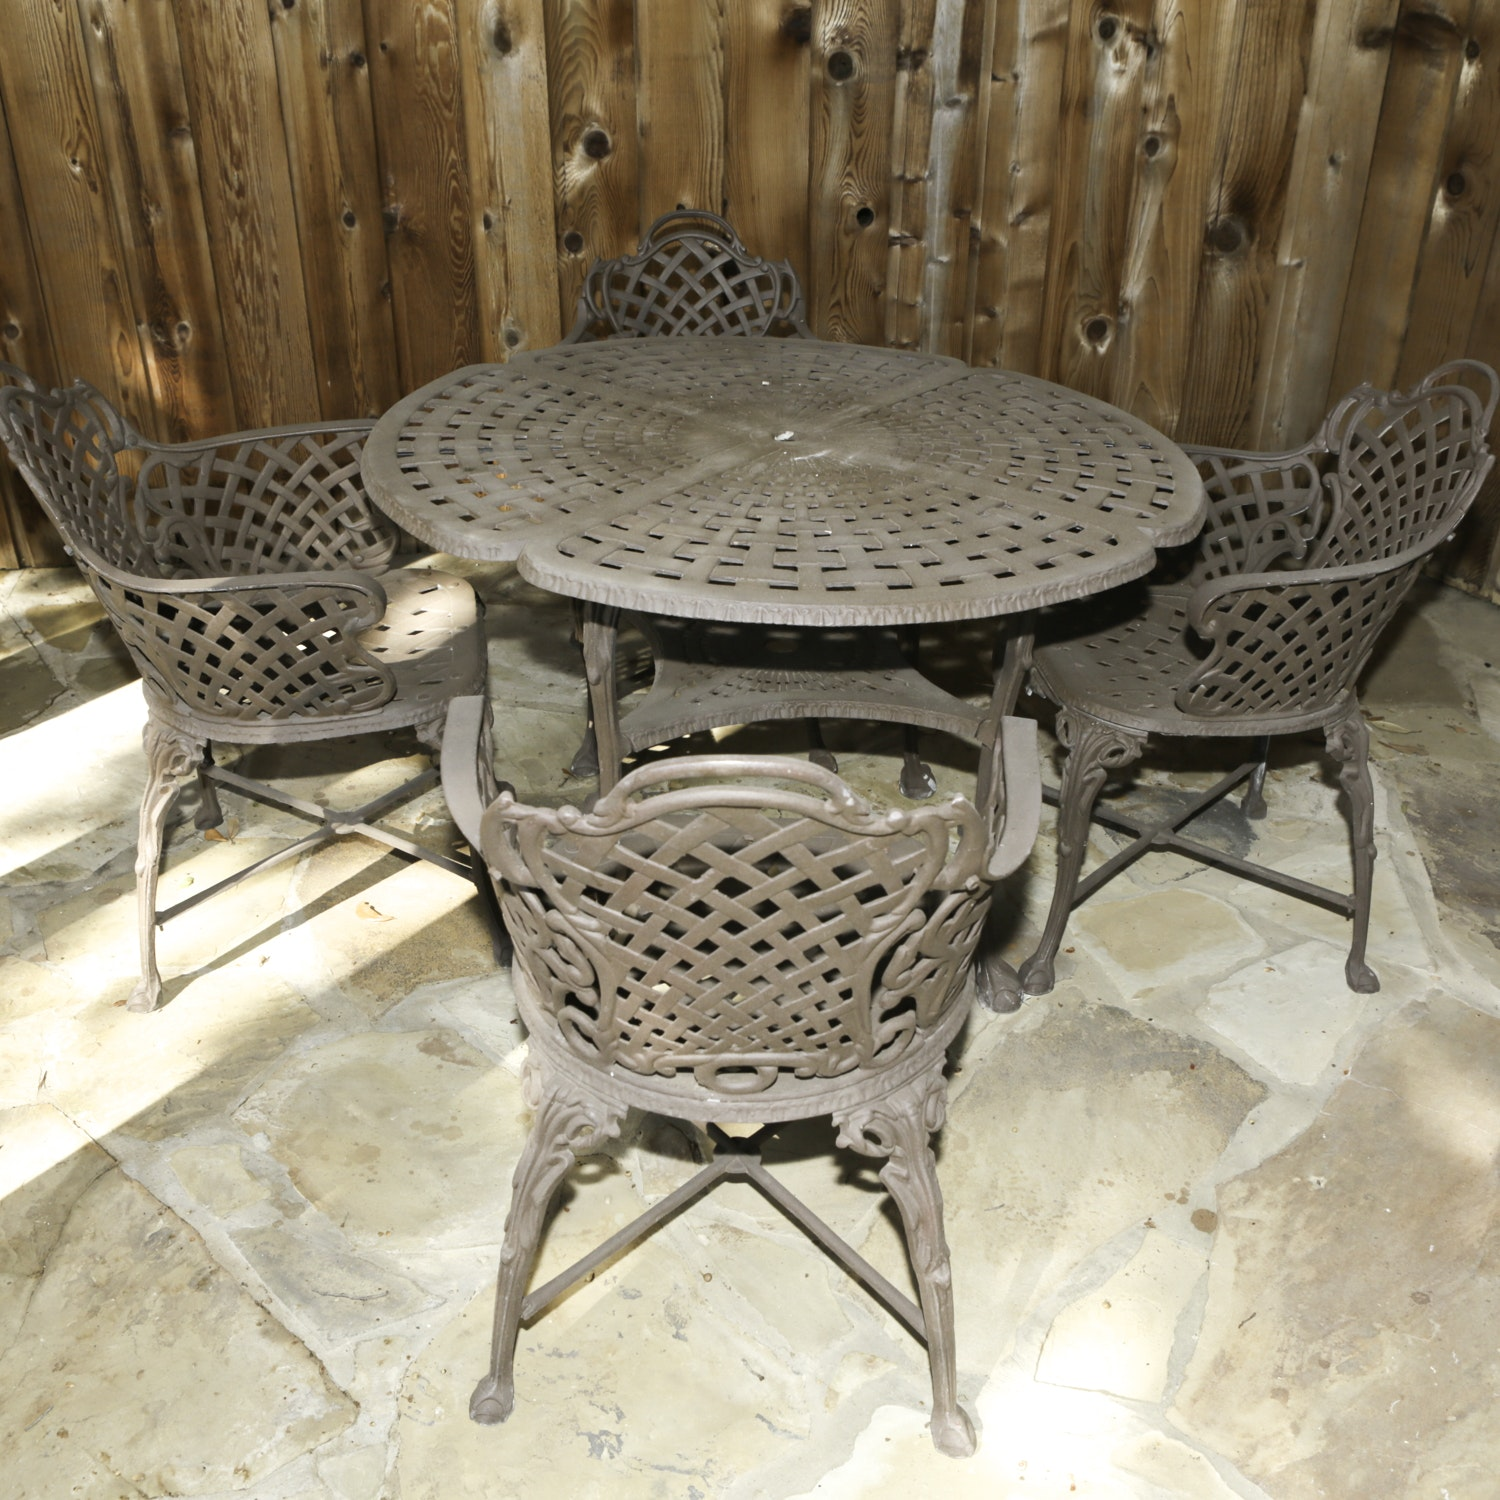 Metal Patio Table and Chairs